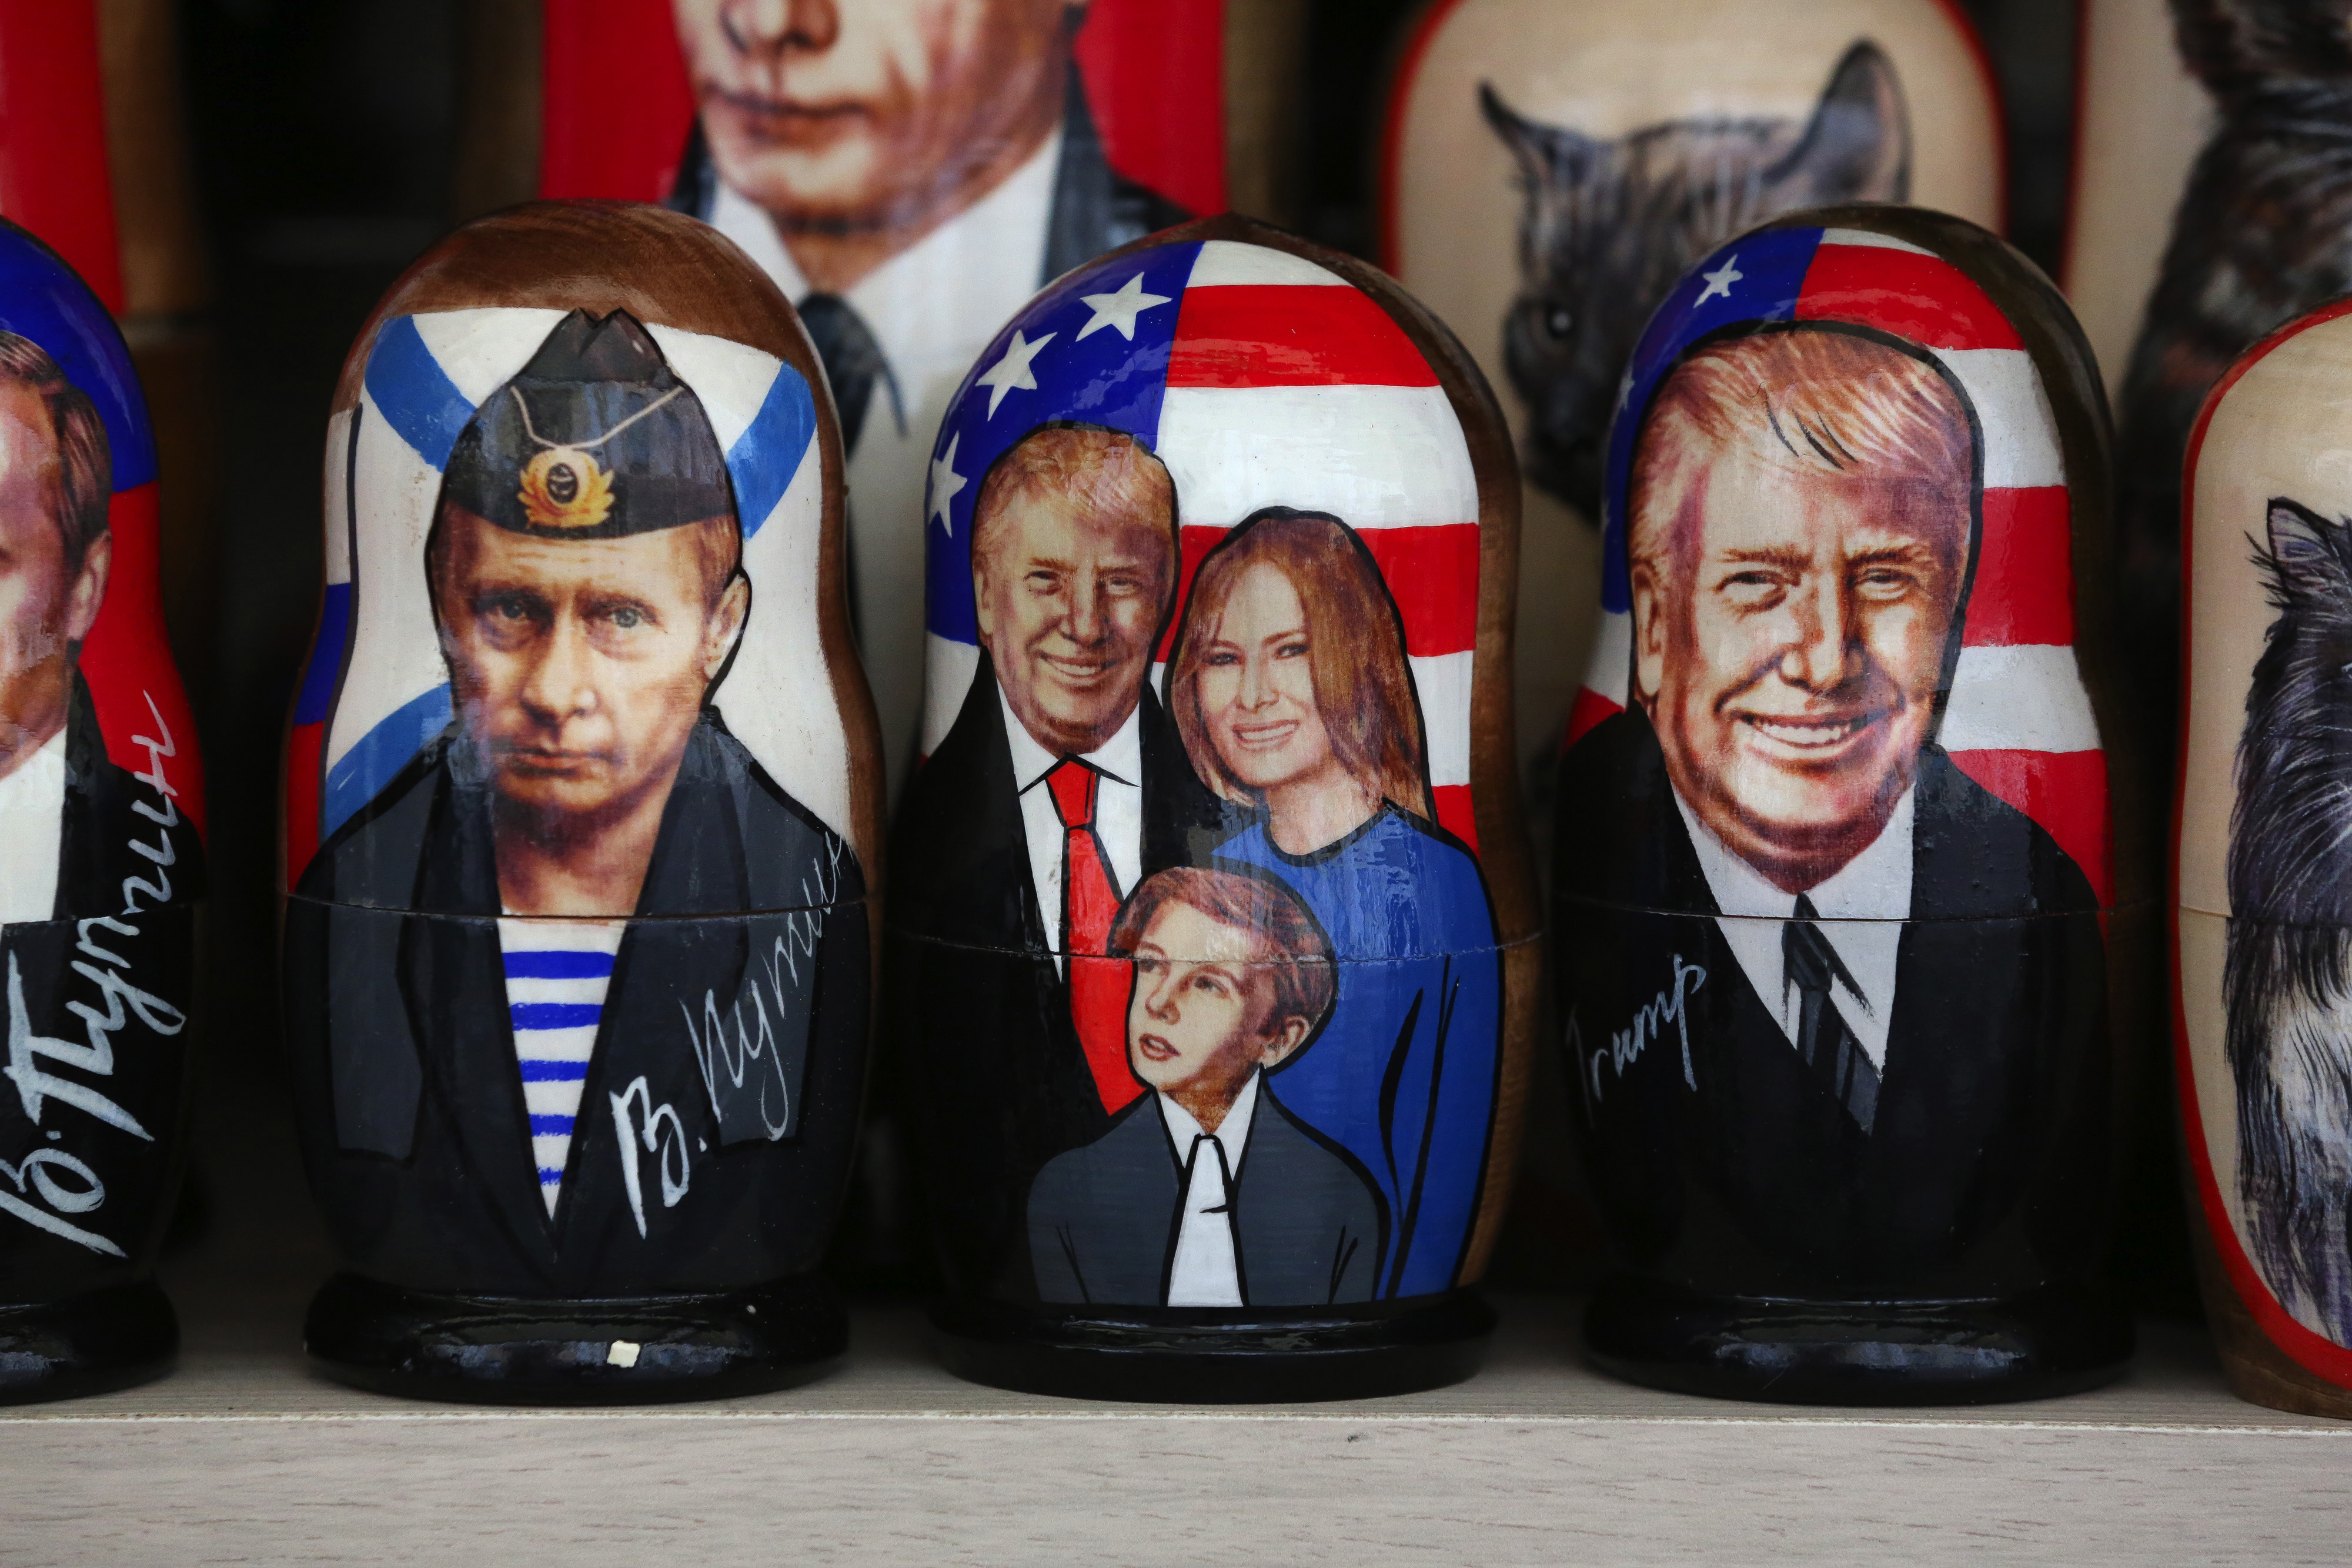 Souvenir matryoshka dolls depicting Vladimir Putin, Russia's president, left, and President Donald Trump and his family sit on display at a tourist stall in the city center ahead of the St. Petersburg International Economic Forum in Saint Petersburg, Russia, on May 31, 2017. Photograph MUST CREDIT: Bloomberg photo by Andrey Rudakov